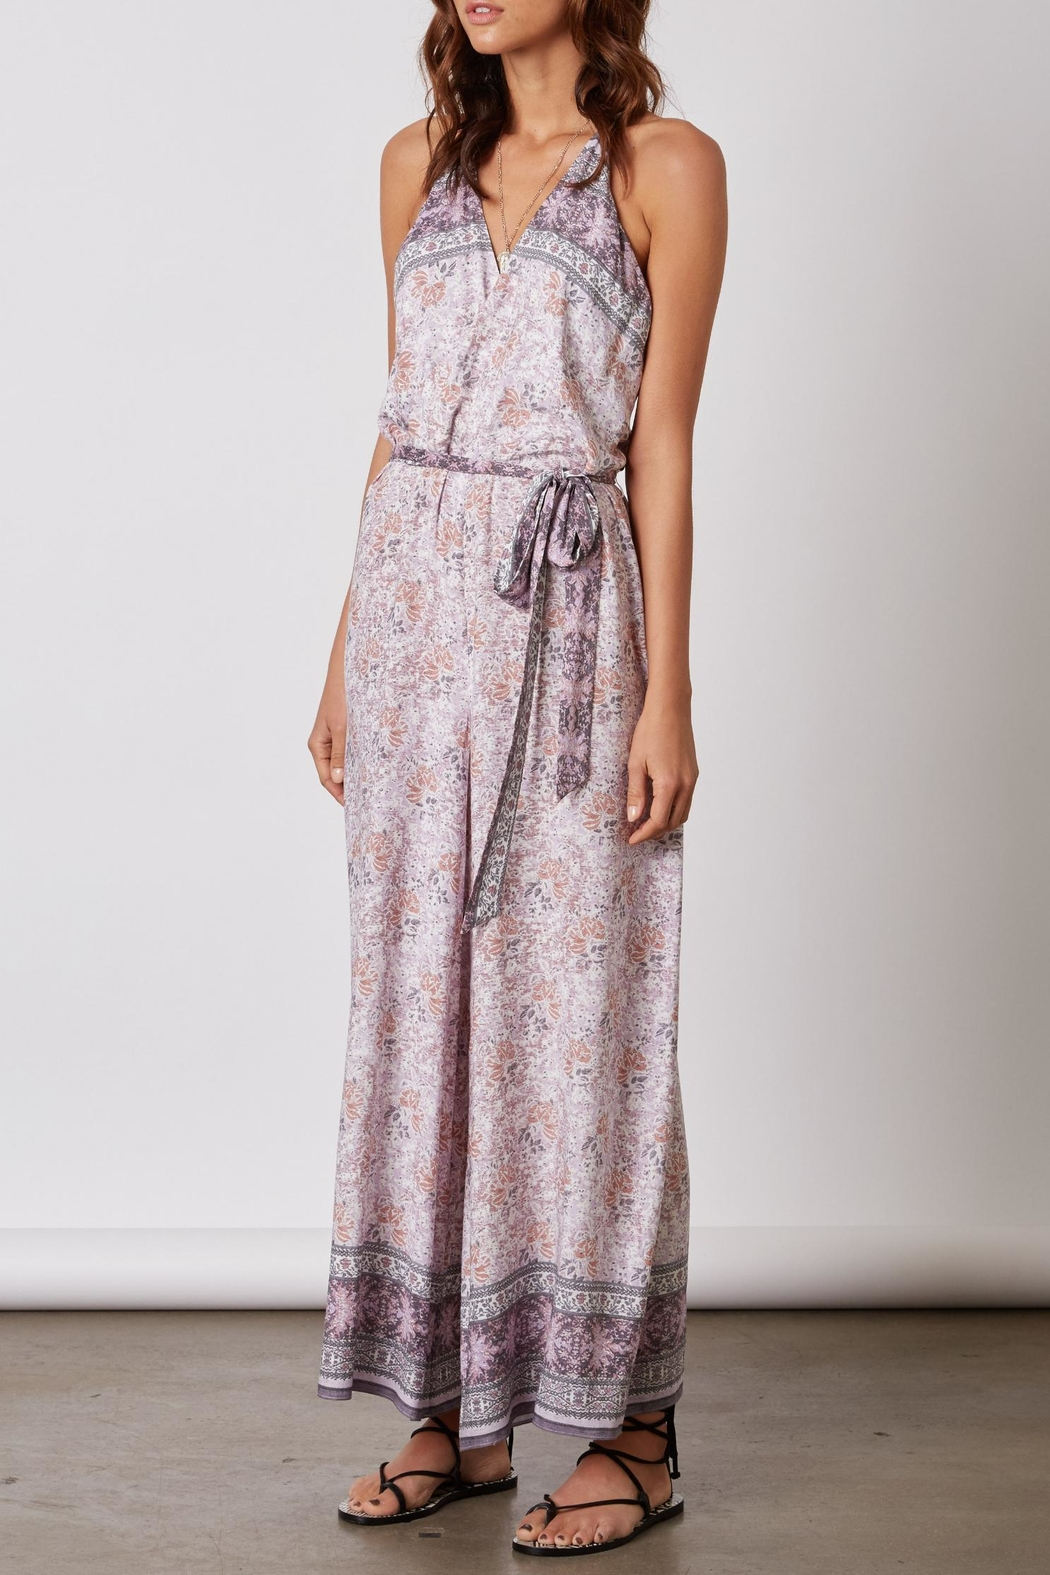 Cotton Candy Lilac Print Romper - Main Image